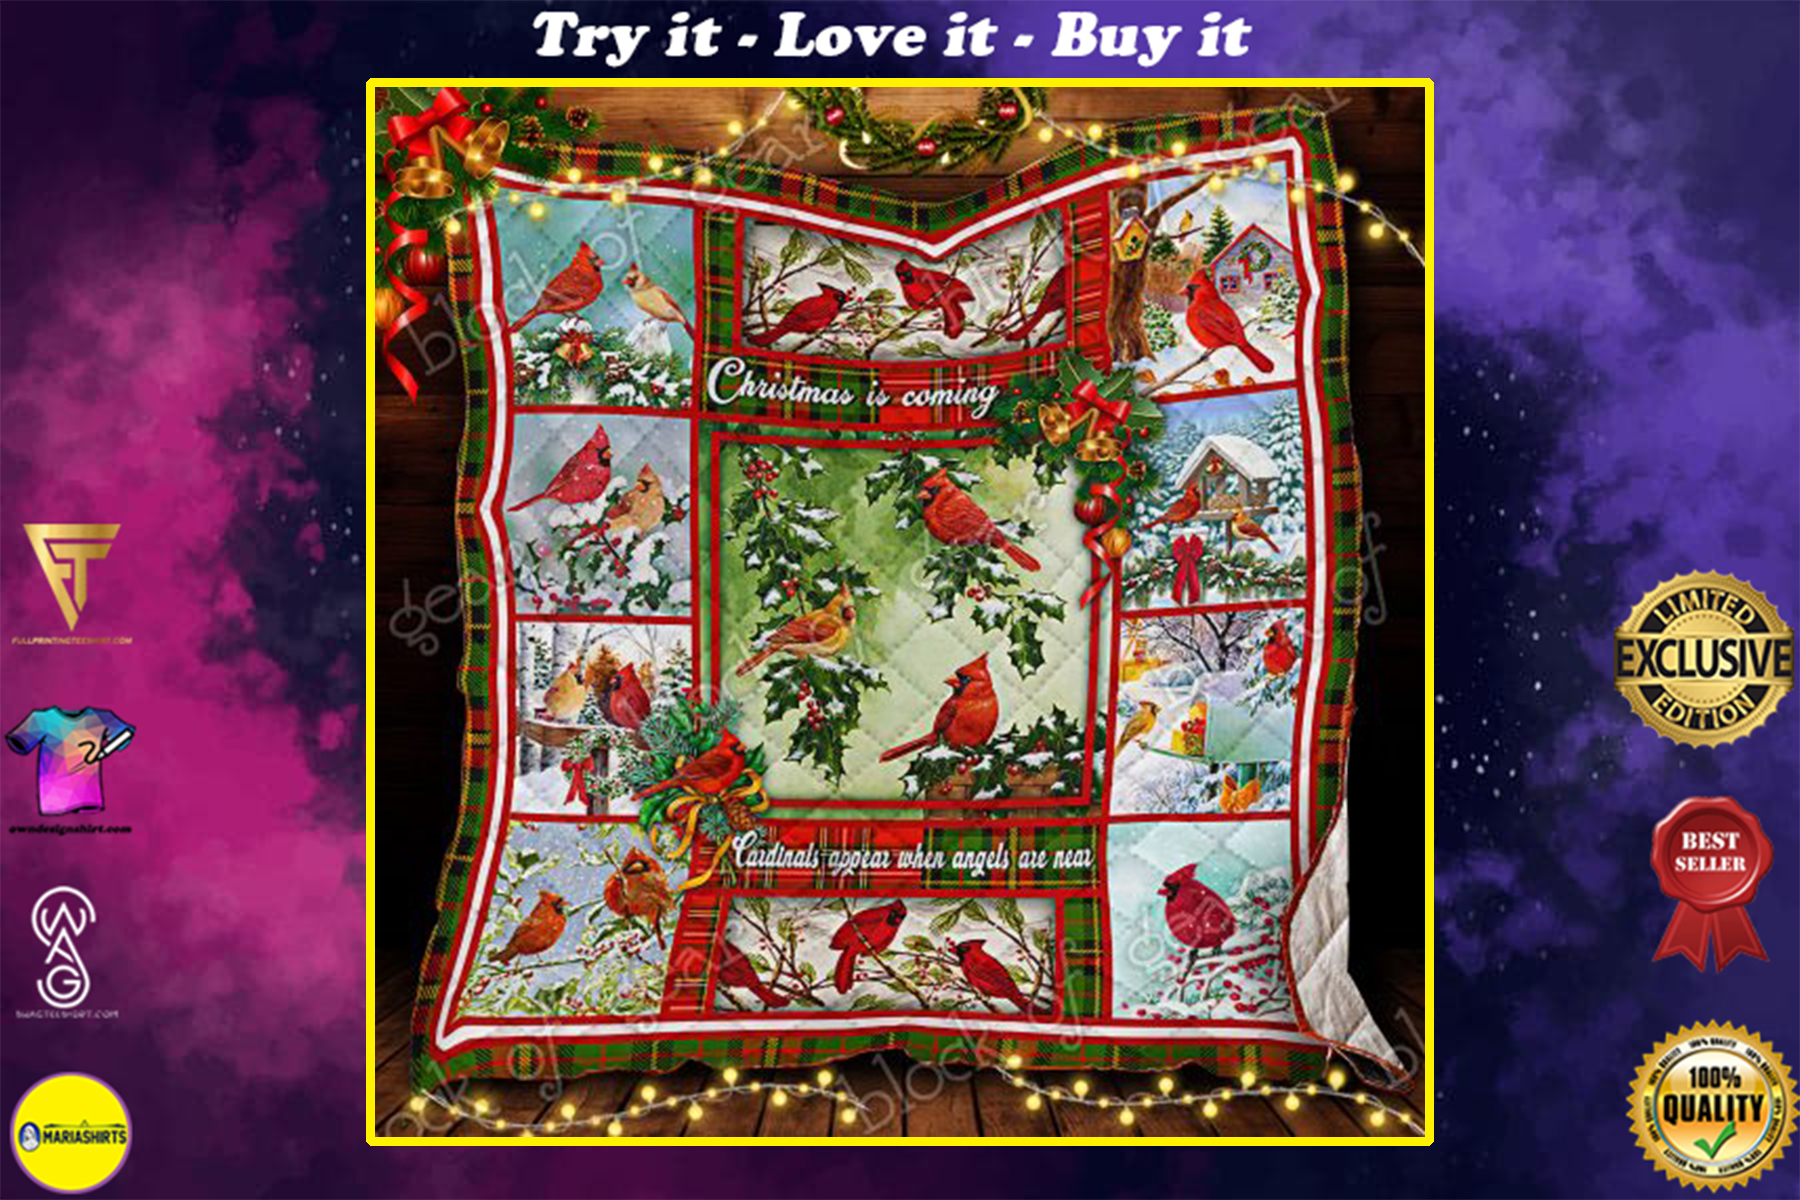 christmas cardinals bird christmas is coming cardinals appear when angels are near quilt